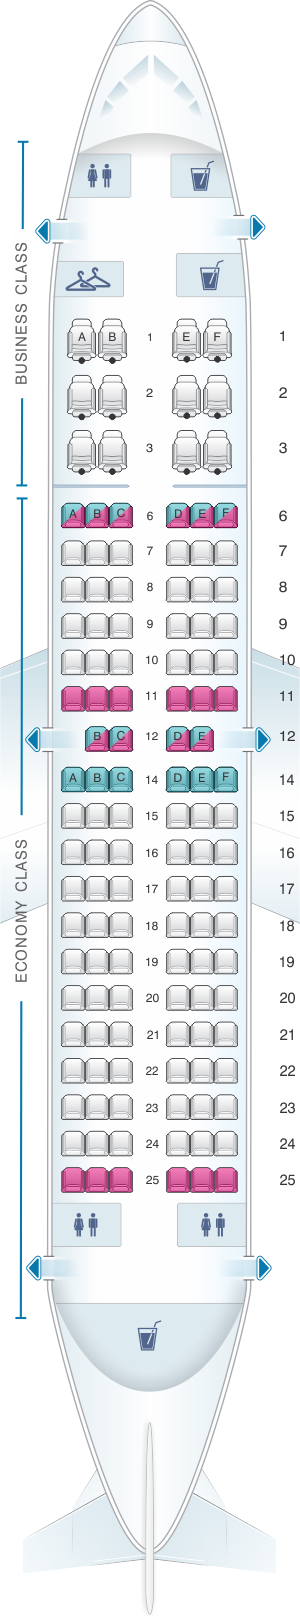 Seat map for Aeromexico Boeing B737 700